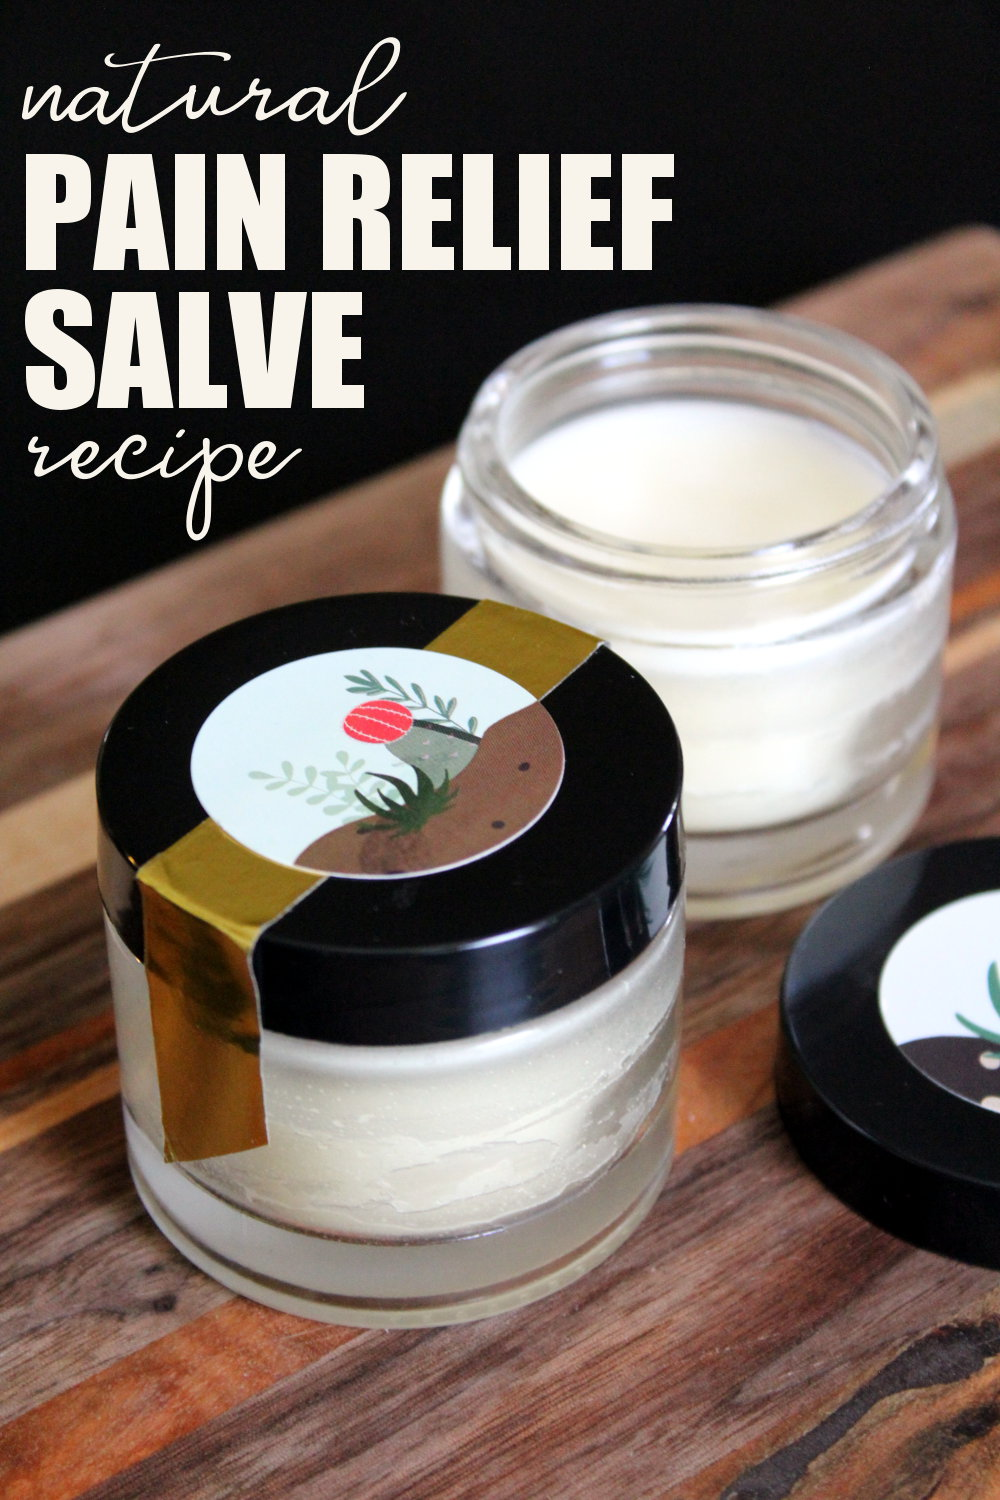 This natural pain relief salve recipe with arnica and ginger essential oil is made with just four simple ingredients to relieve inflammation and ease pain associated with muscle pain, arthritis, sprains, fibromyalgia, bruises and carpal tunnel. Make this natural home remedy in just ten minutes or less!